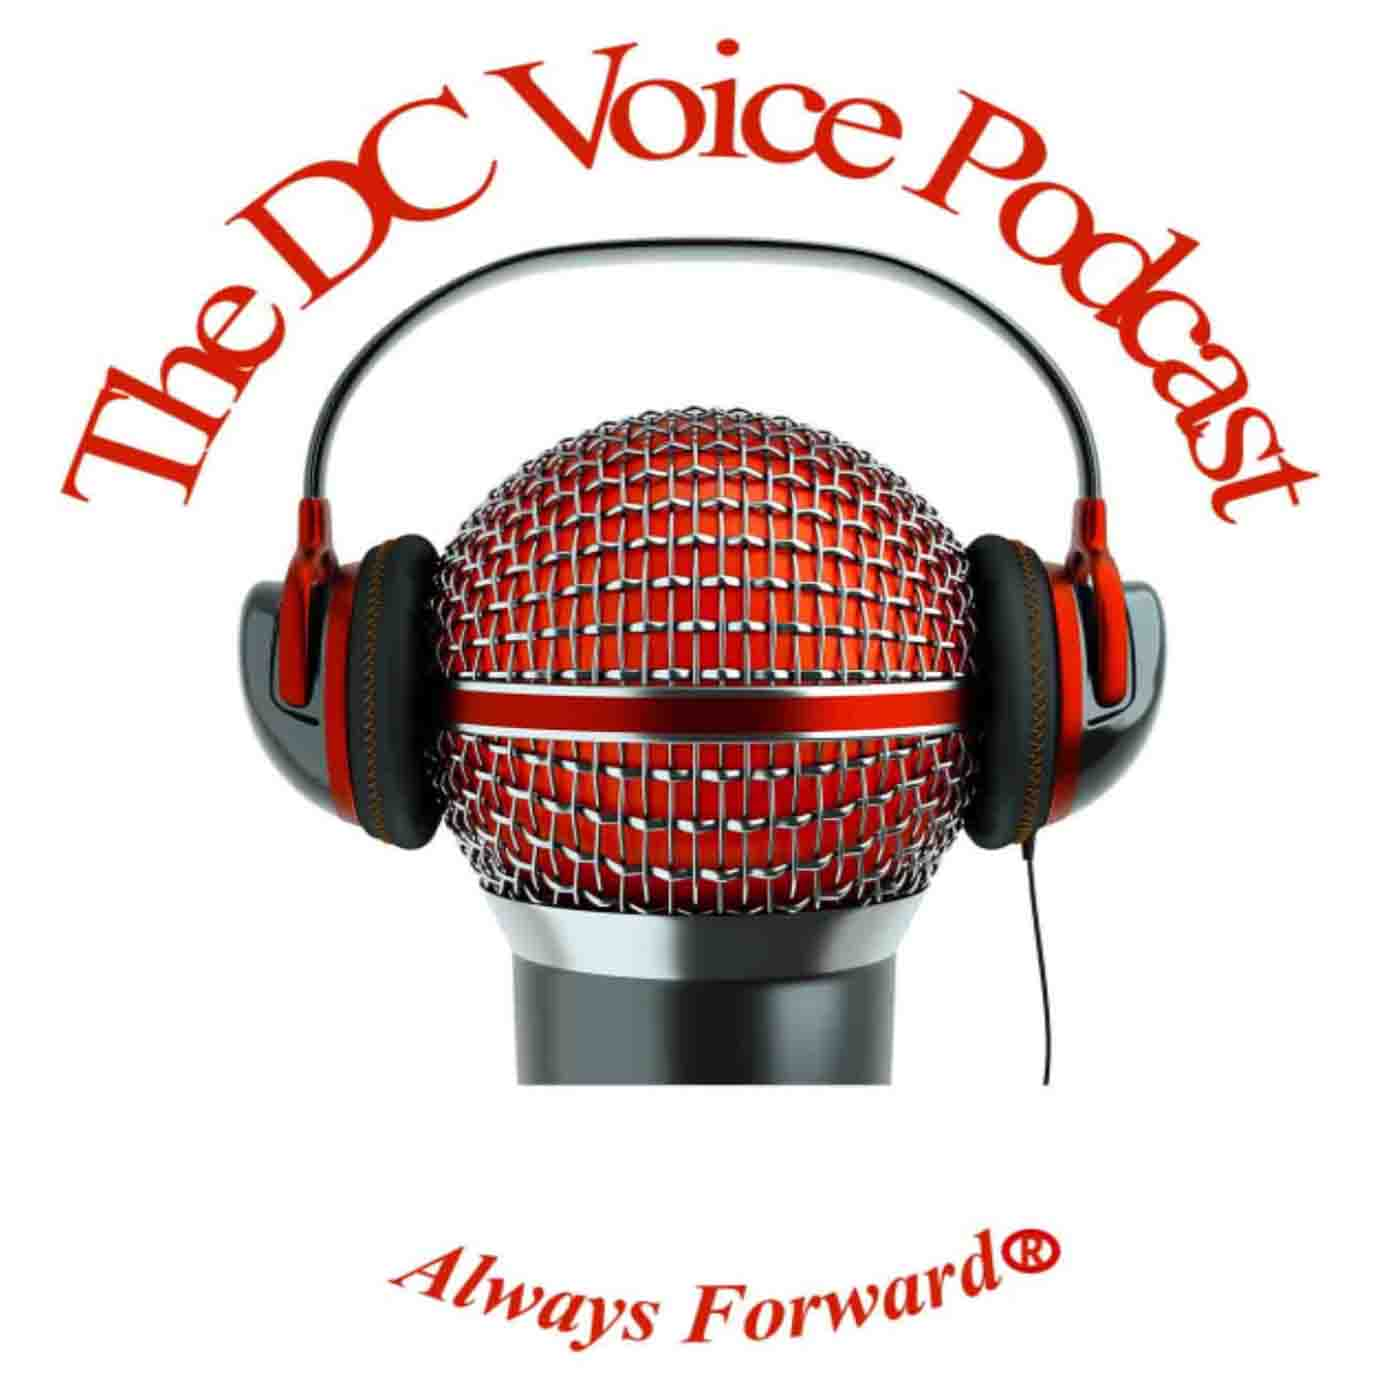 The DC Voice » In Their Own Words